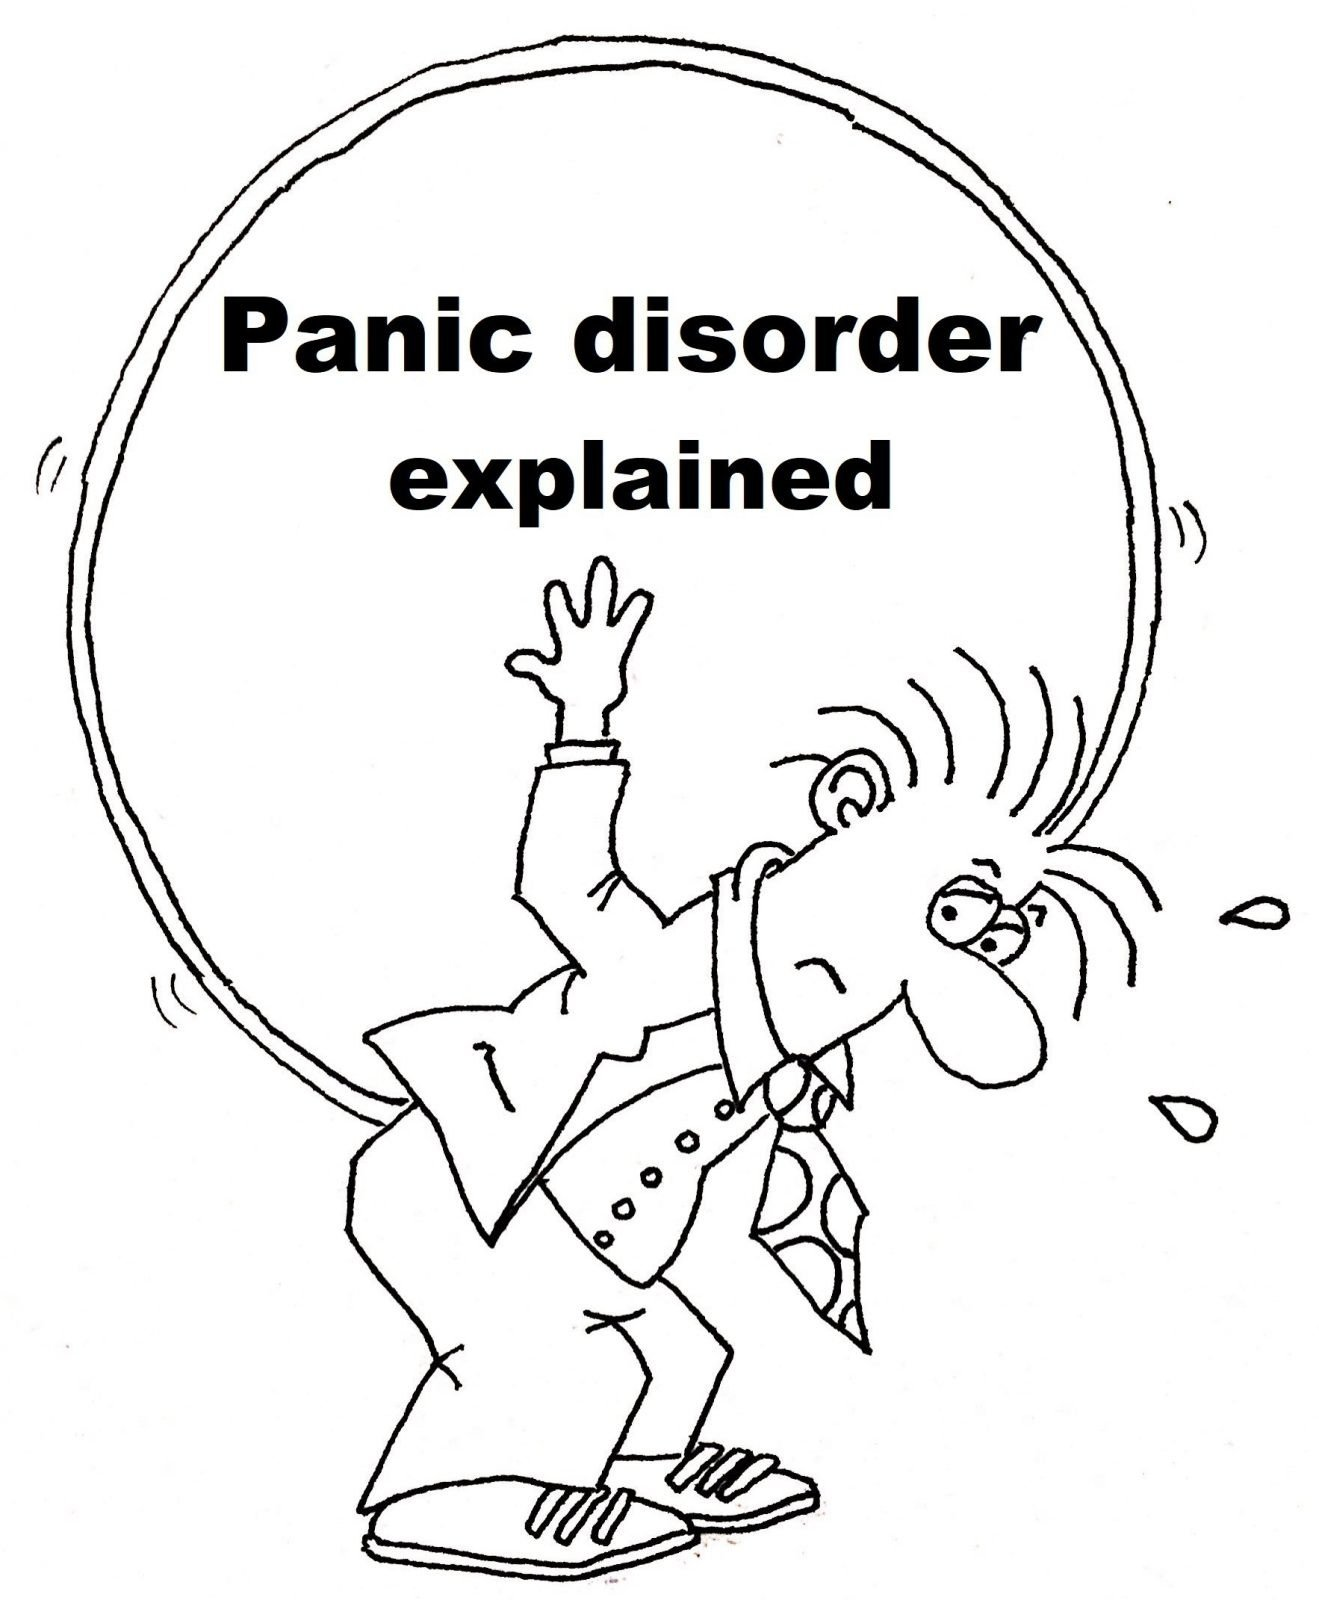 Panic disorder explained